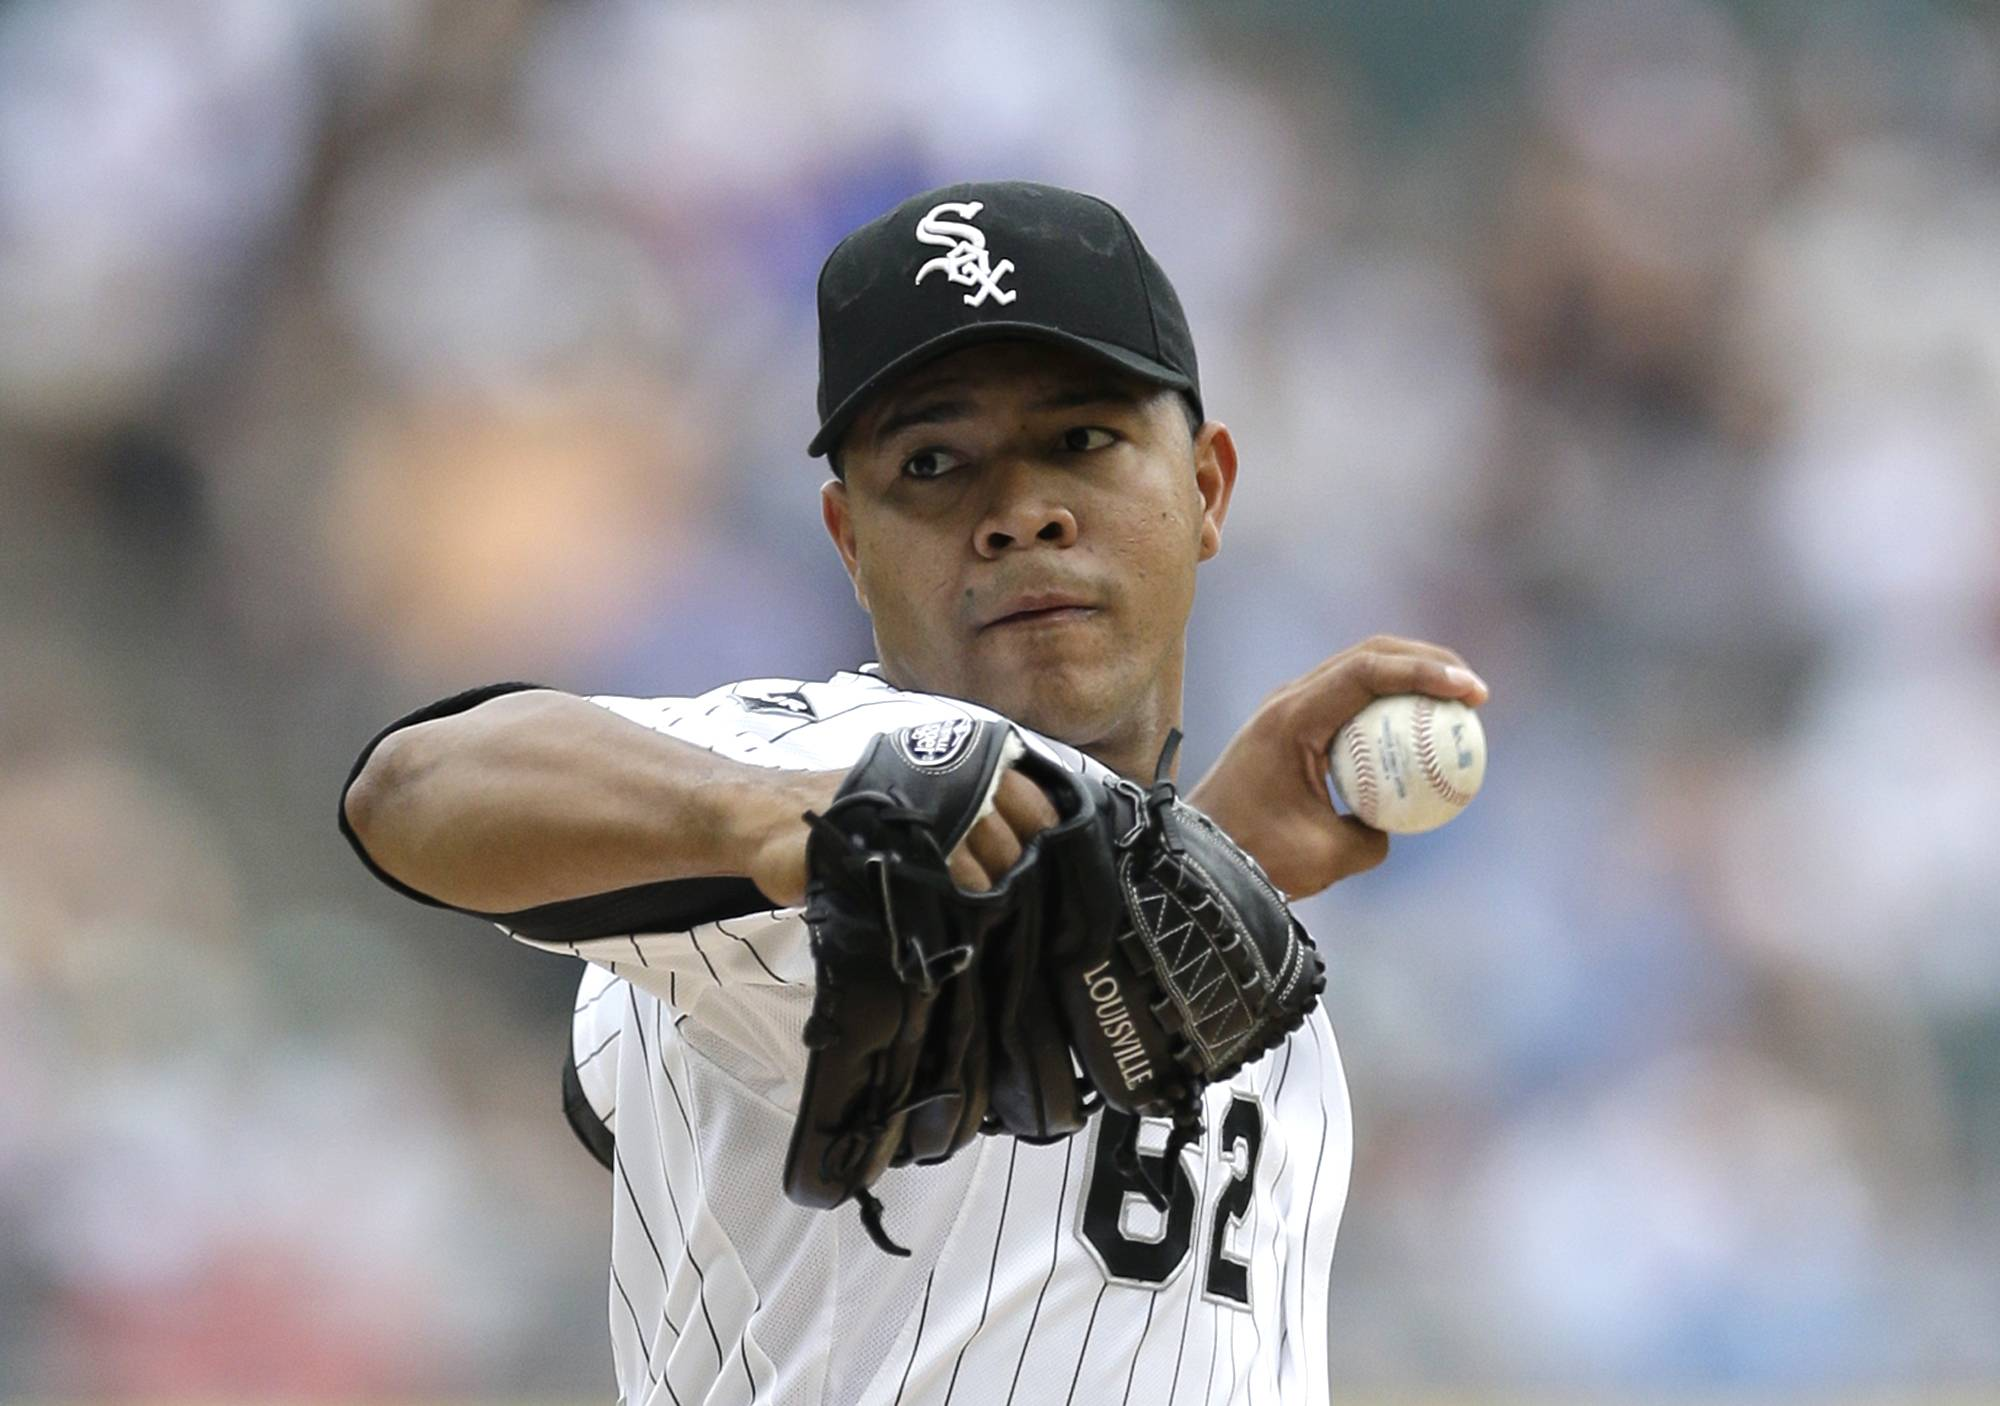 Despite pitcher Jose Quintana's strong start in Saturday's game against Seattle, the White Sox still lost to the Mariners 3-2 in 14 innings.